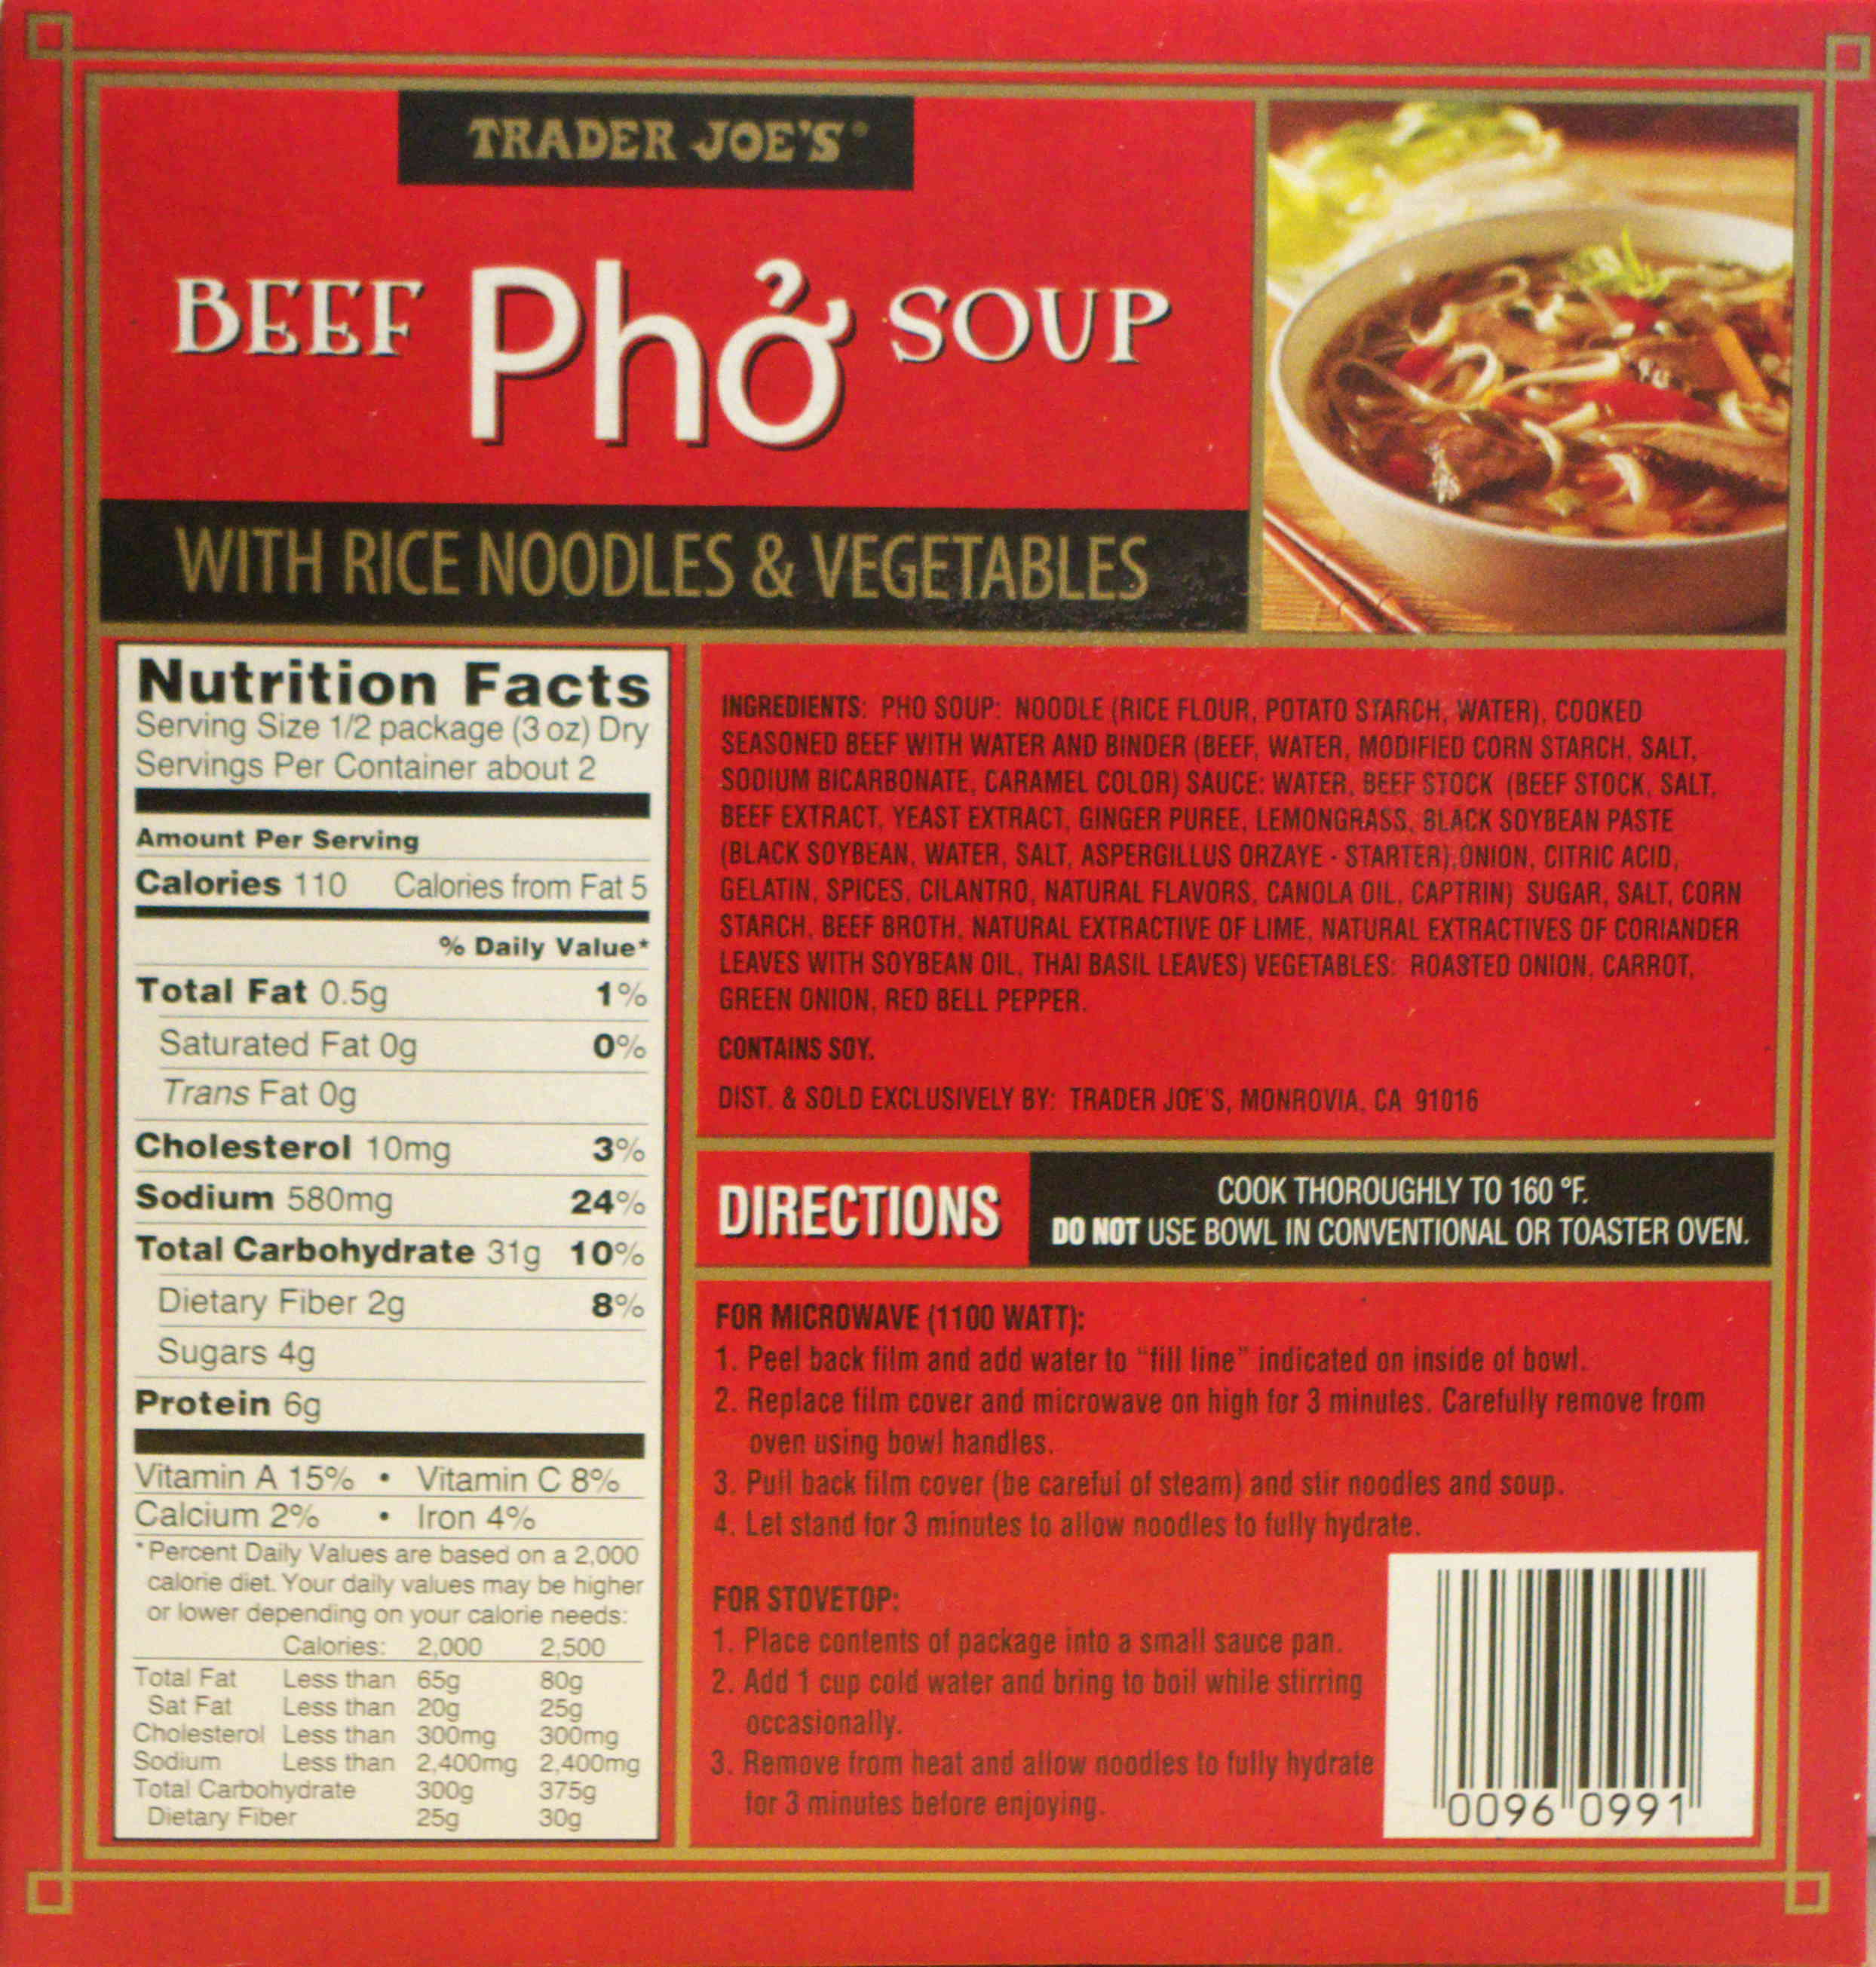 beef pho soup food review trader joe s ain 39 t found a good title blog. Black Bedroom Furniture Sets. Home Design Ideas